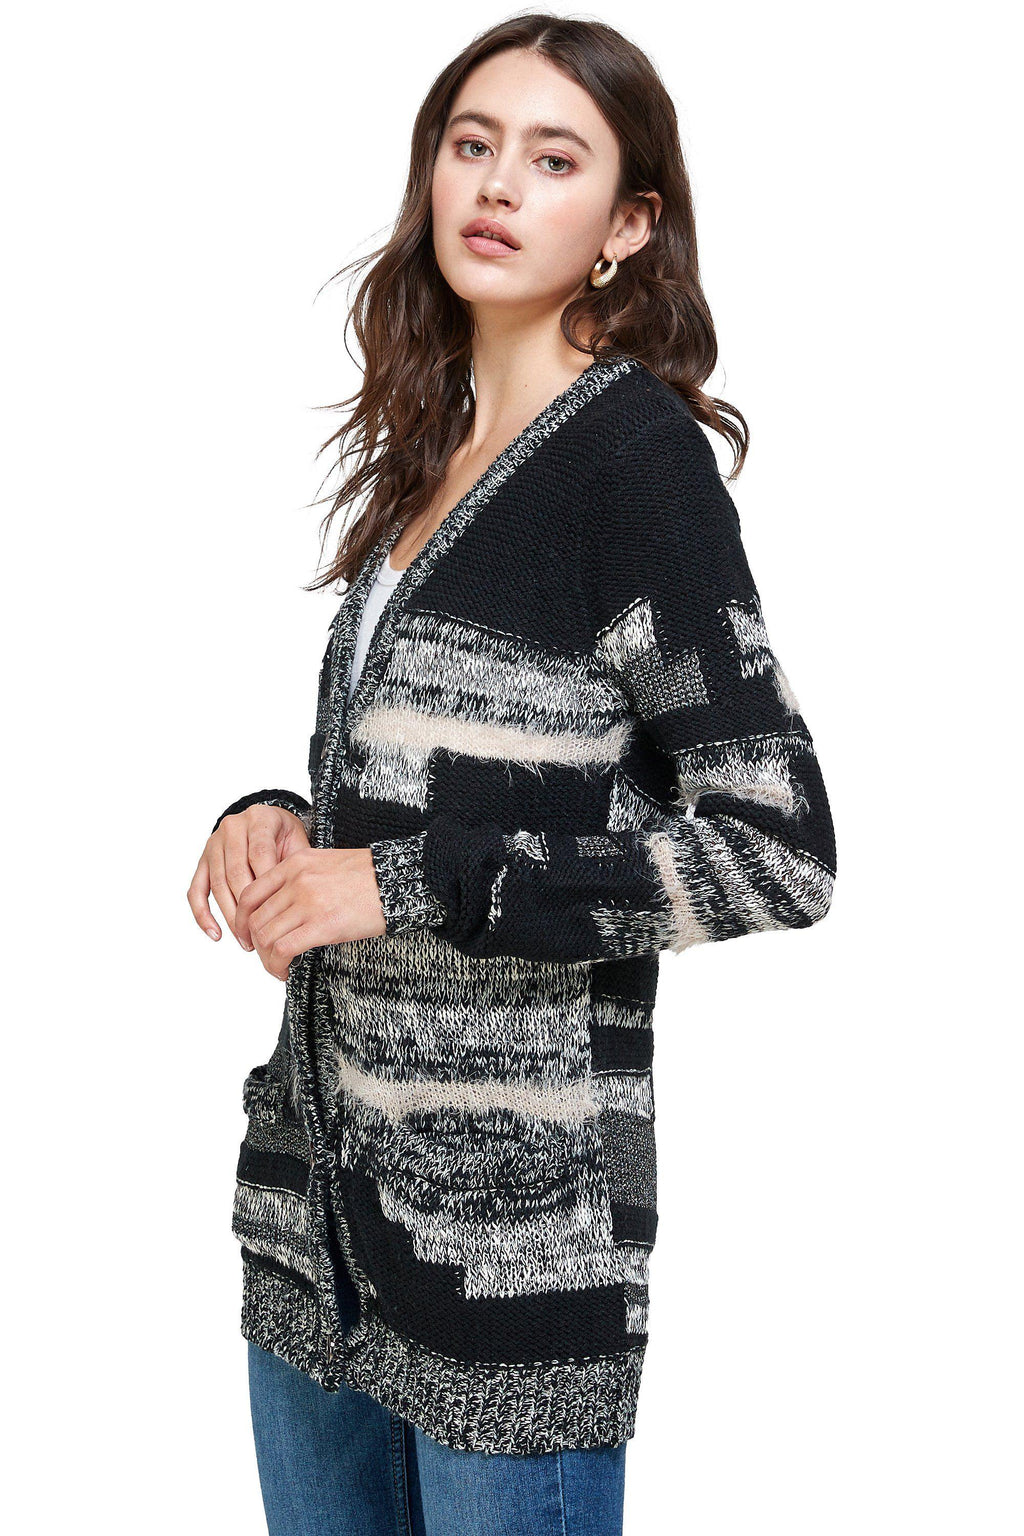 Women's Cardigan Top Sweater Fashion Cardigan Tops